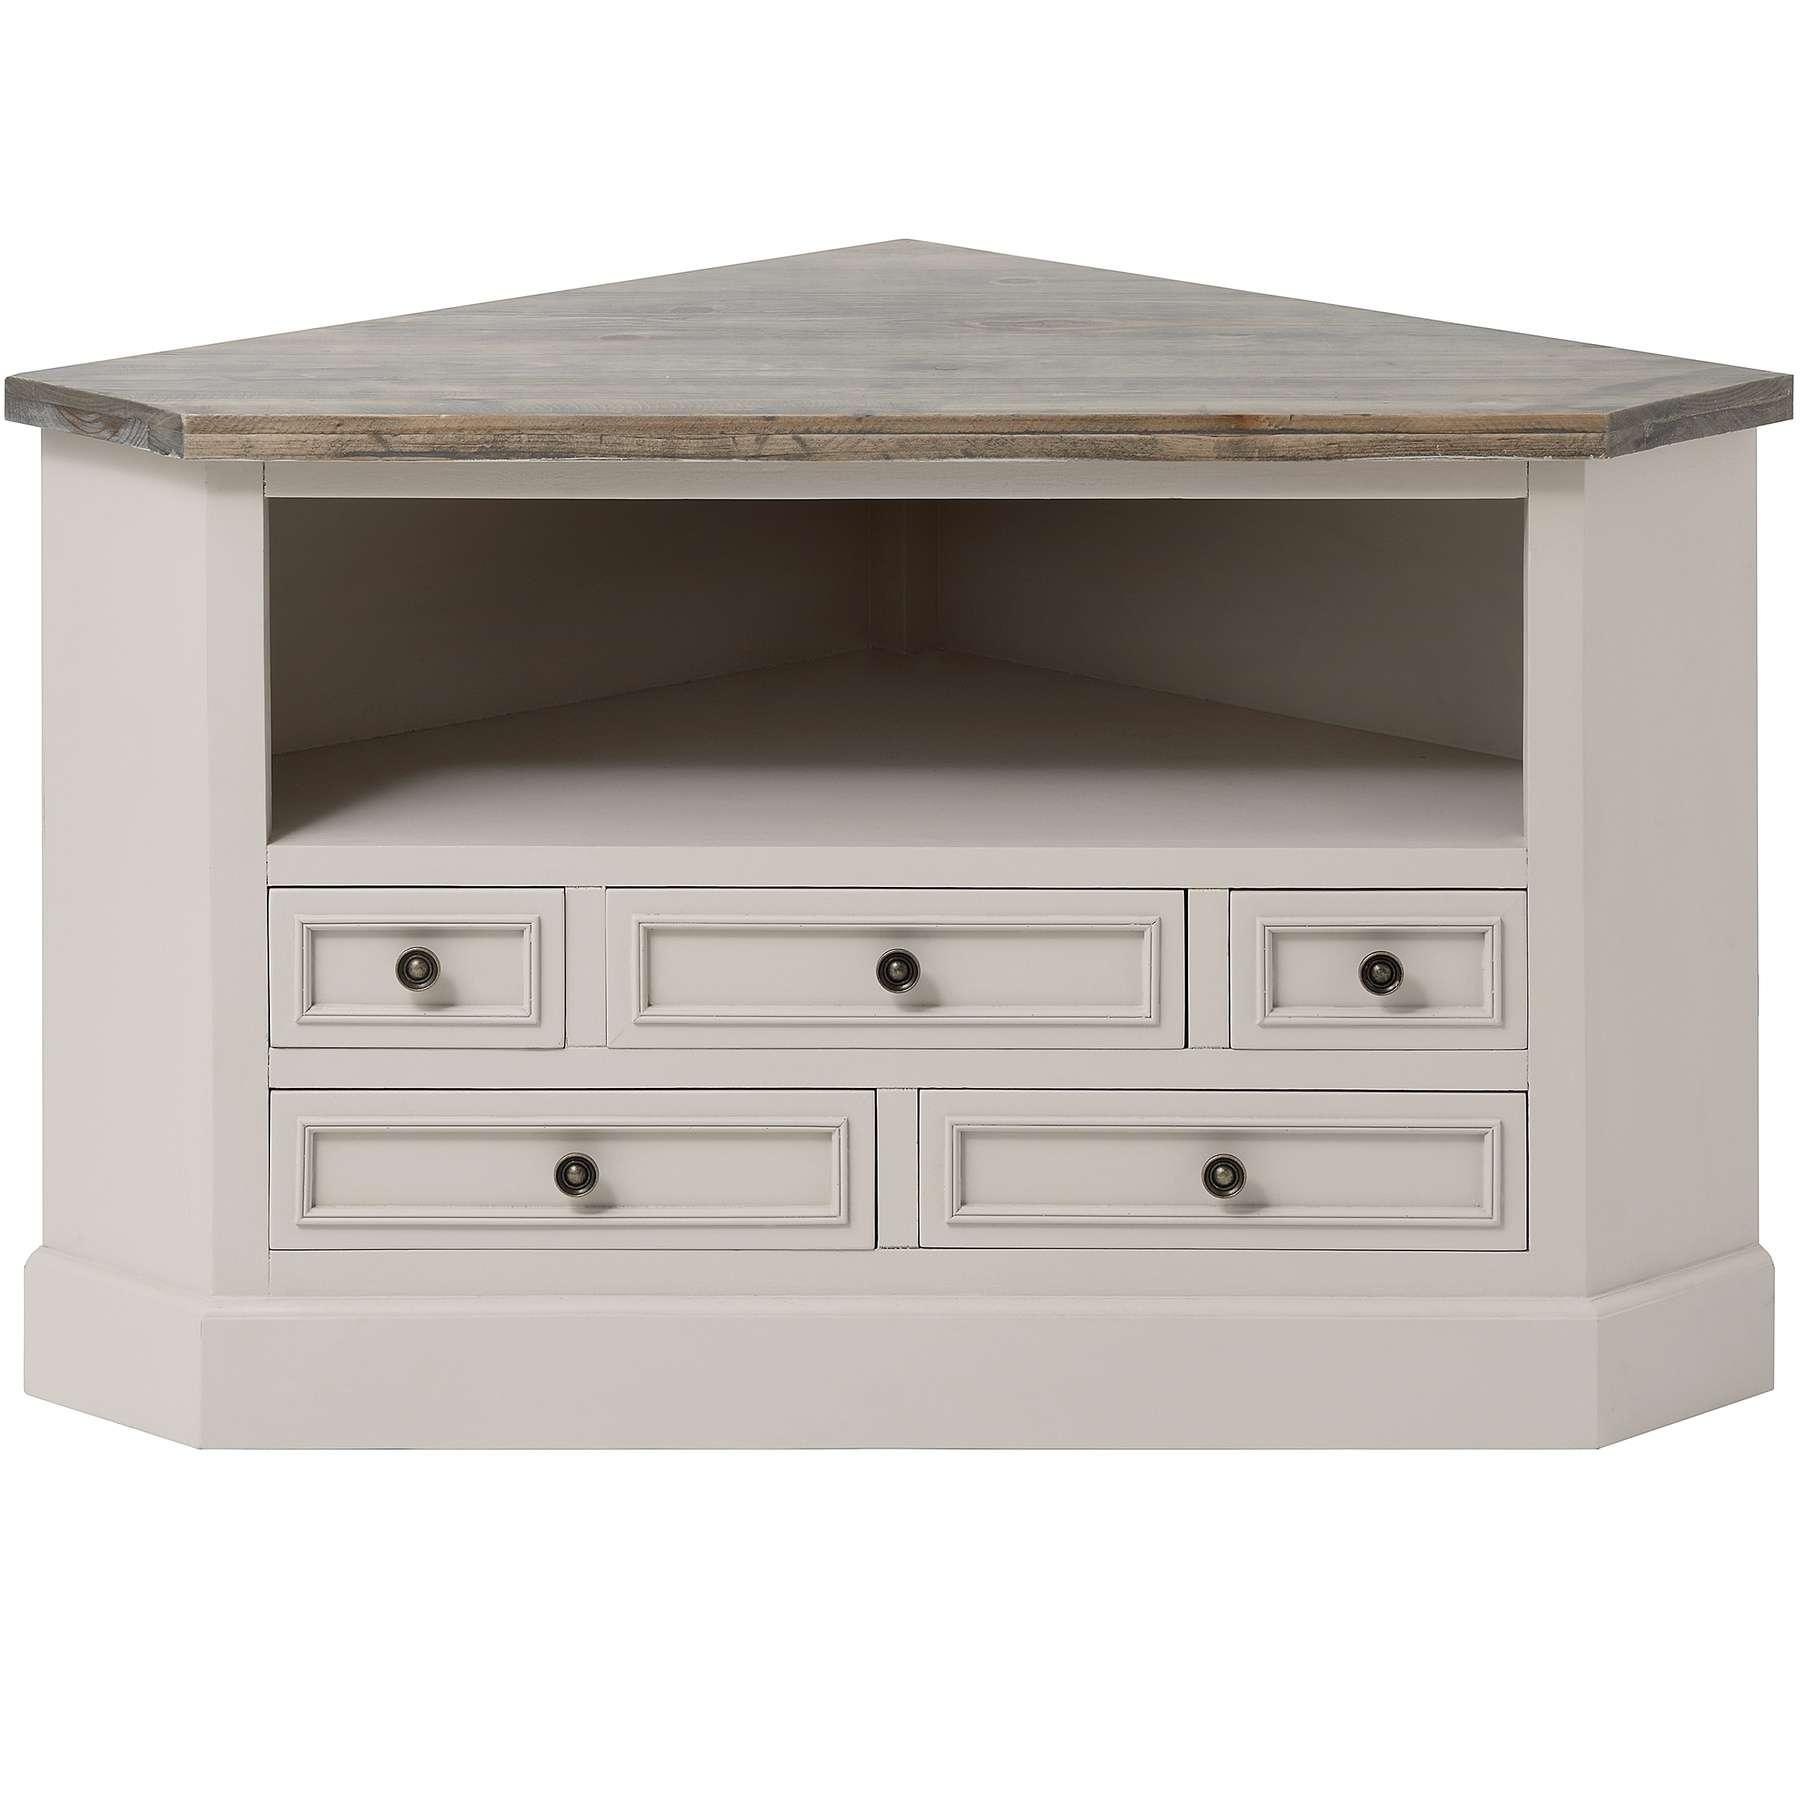 The Studley Collection Corner Tv Unit | From Baytree Interiors With Regard To Wooden Corner Tv Cabinets (View 16 of 20)